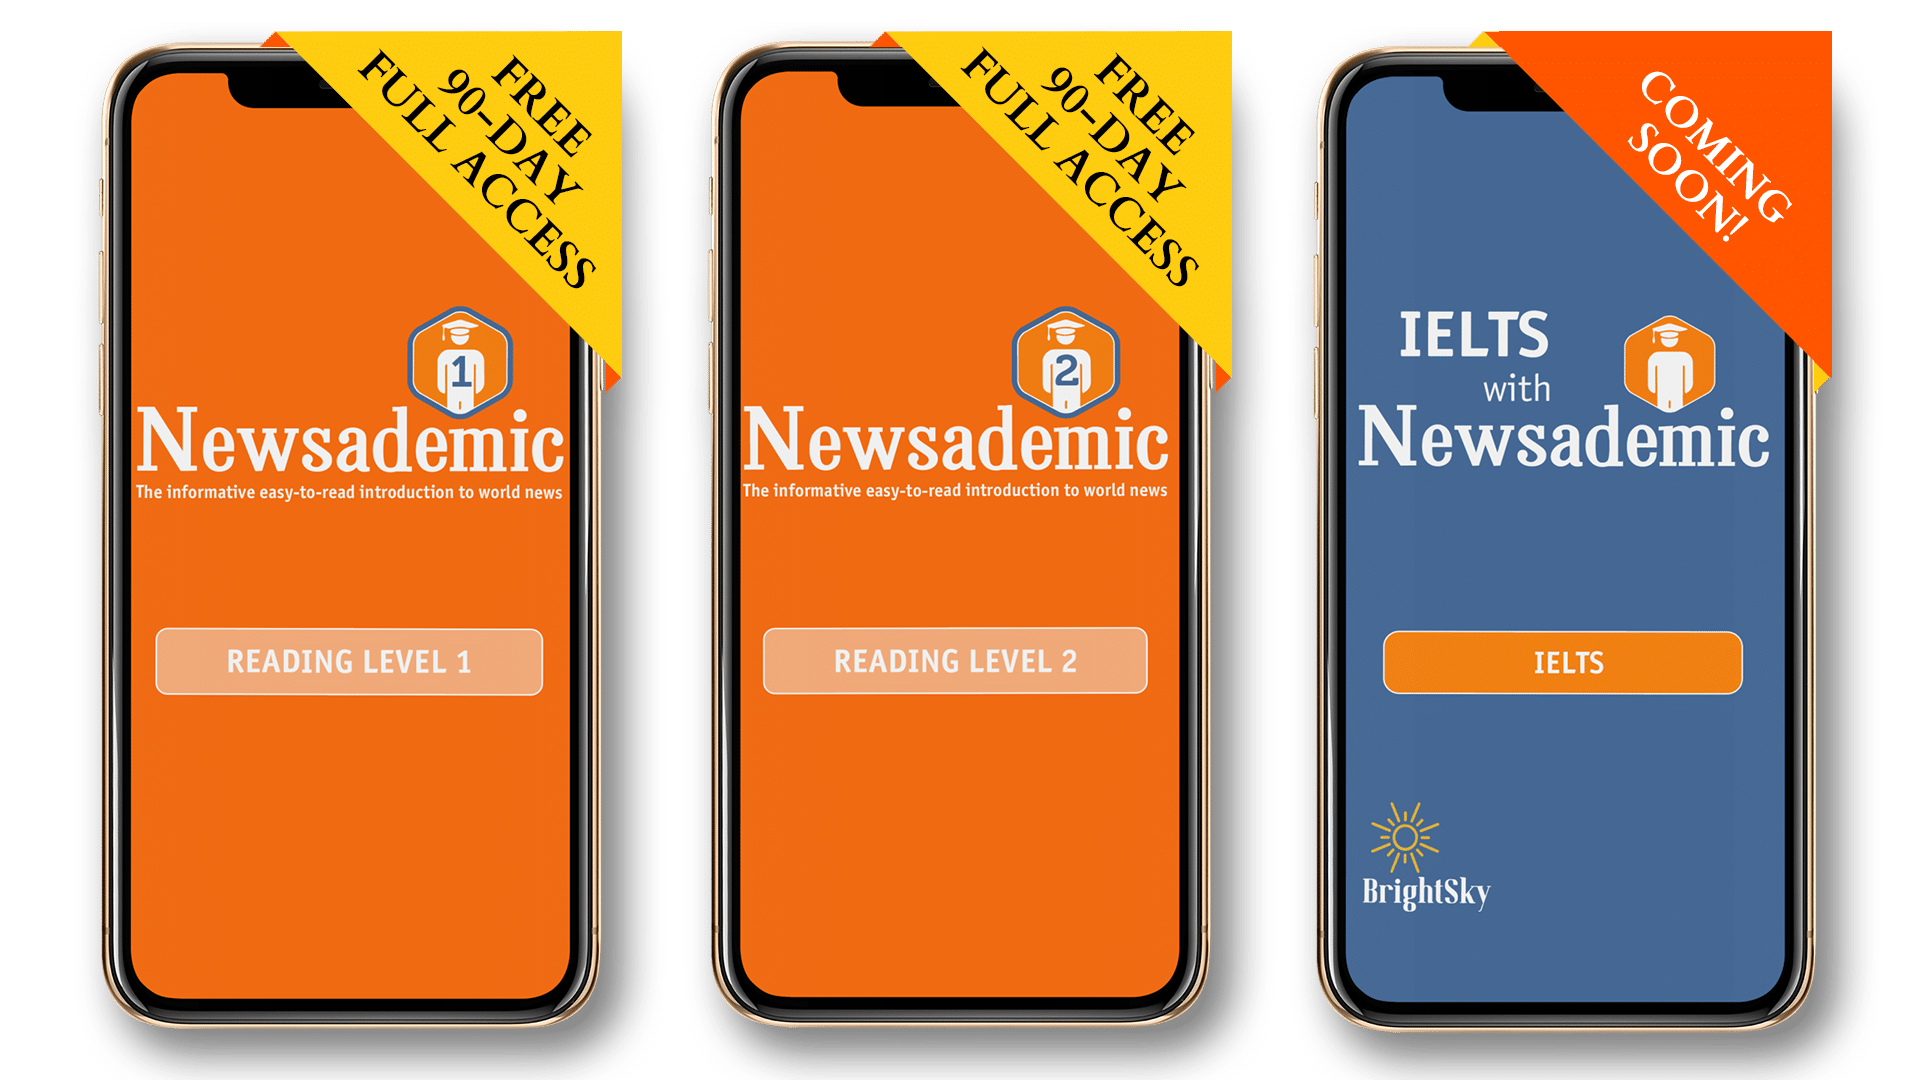 Newsademic Apps available at 3 levels